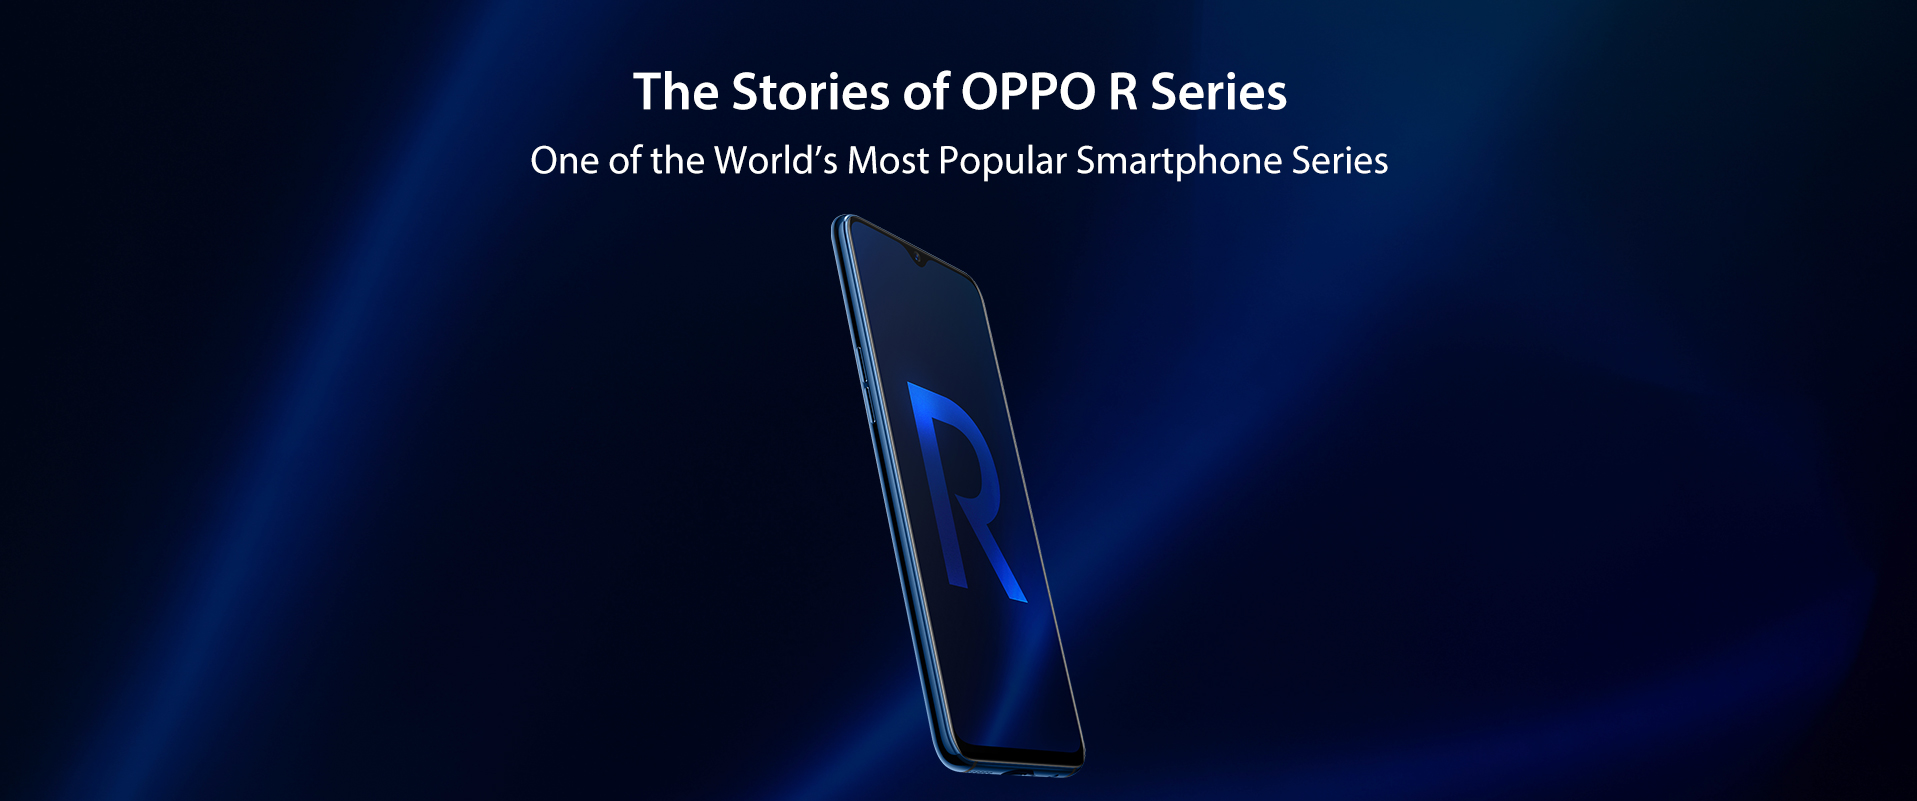 Oppo Mobile For Smartphones Accessories Global Alto Wiring Diagram Diy Central Lock Installation In My Maruti 800 R Series Story